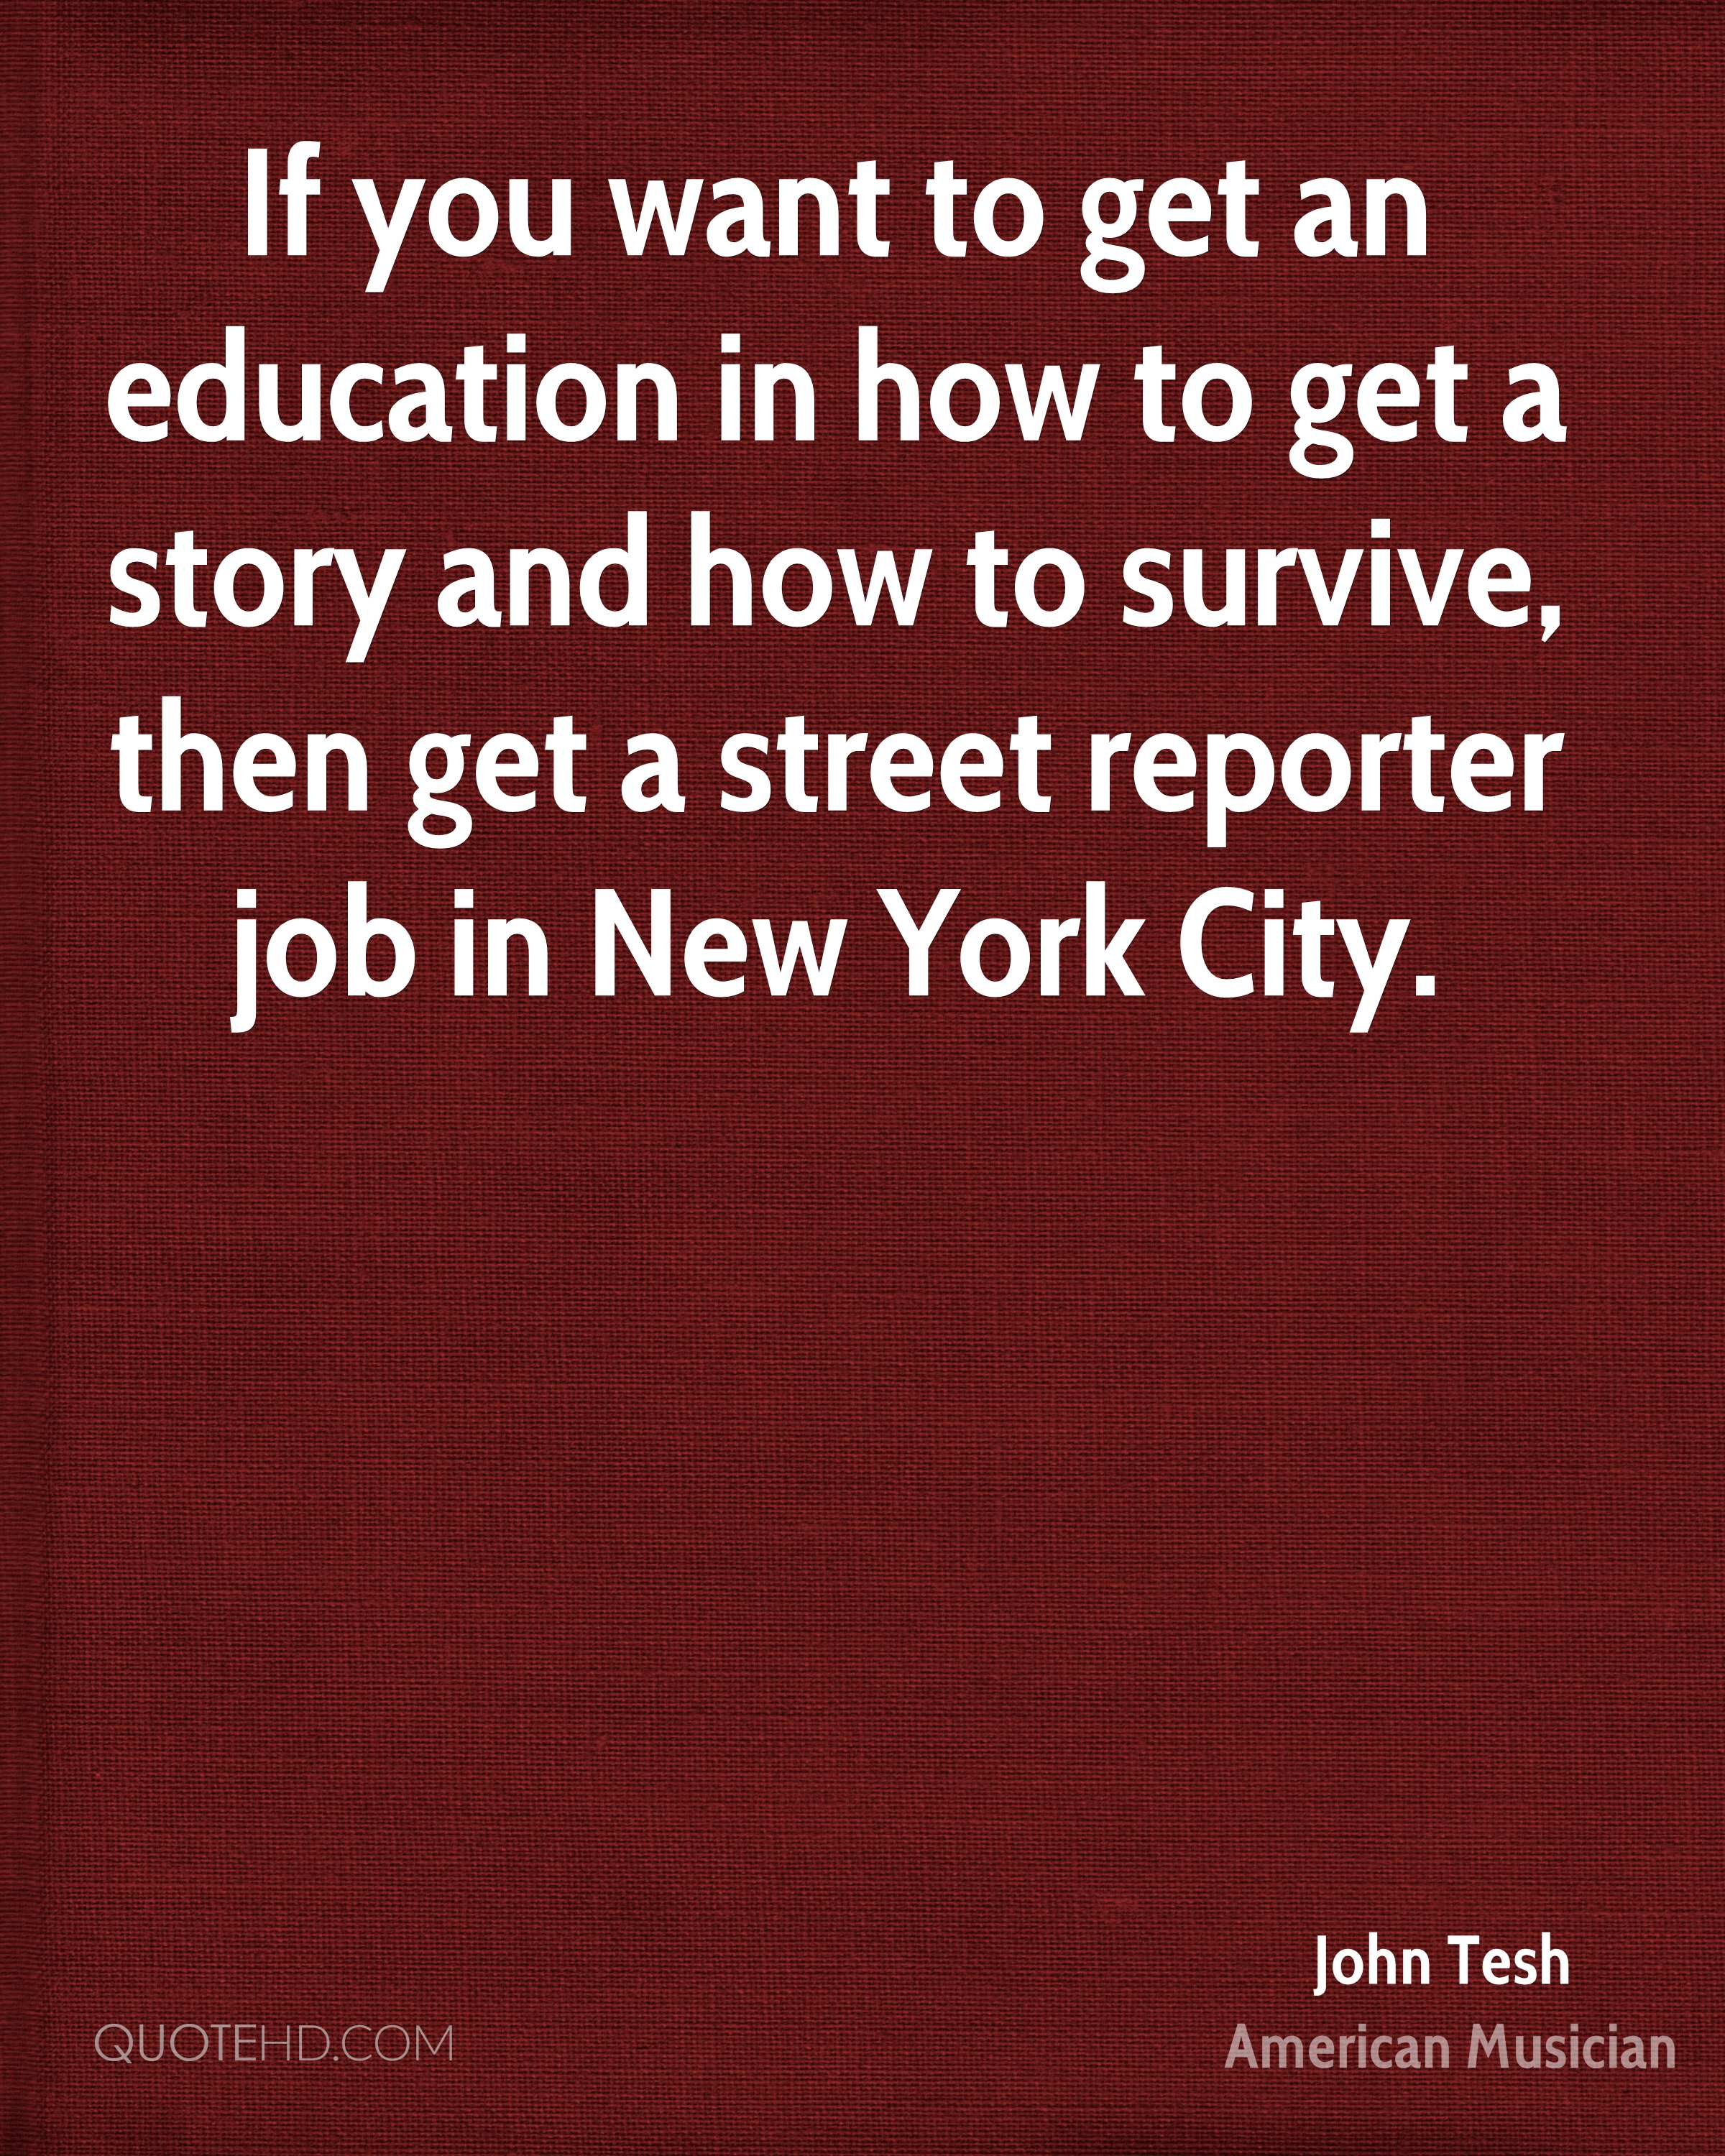 If you want to get an education in how to get a story and how to survive, then get a street reporter job in New York City.